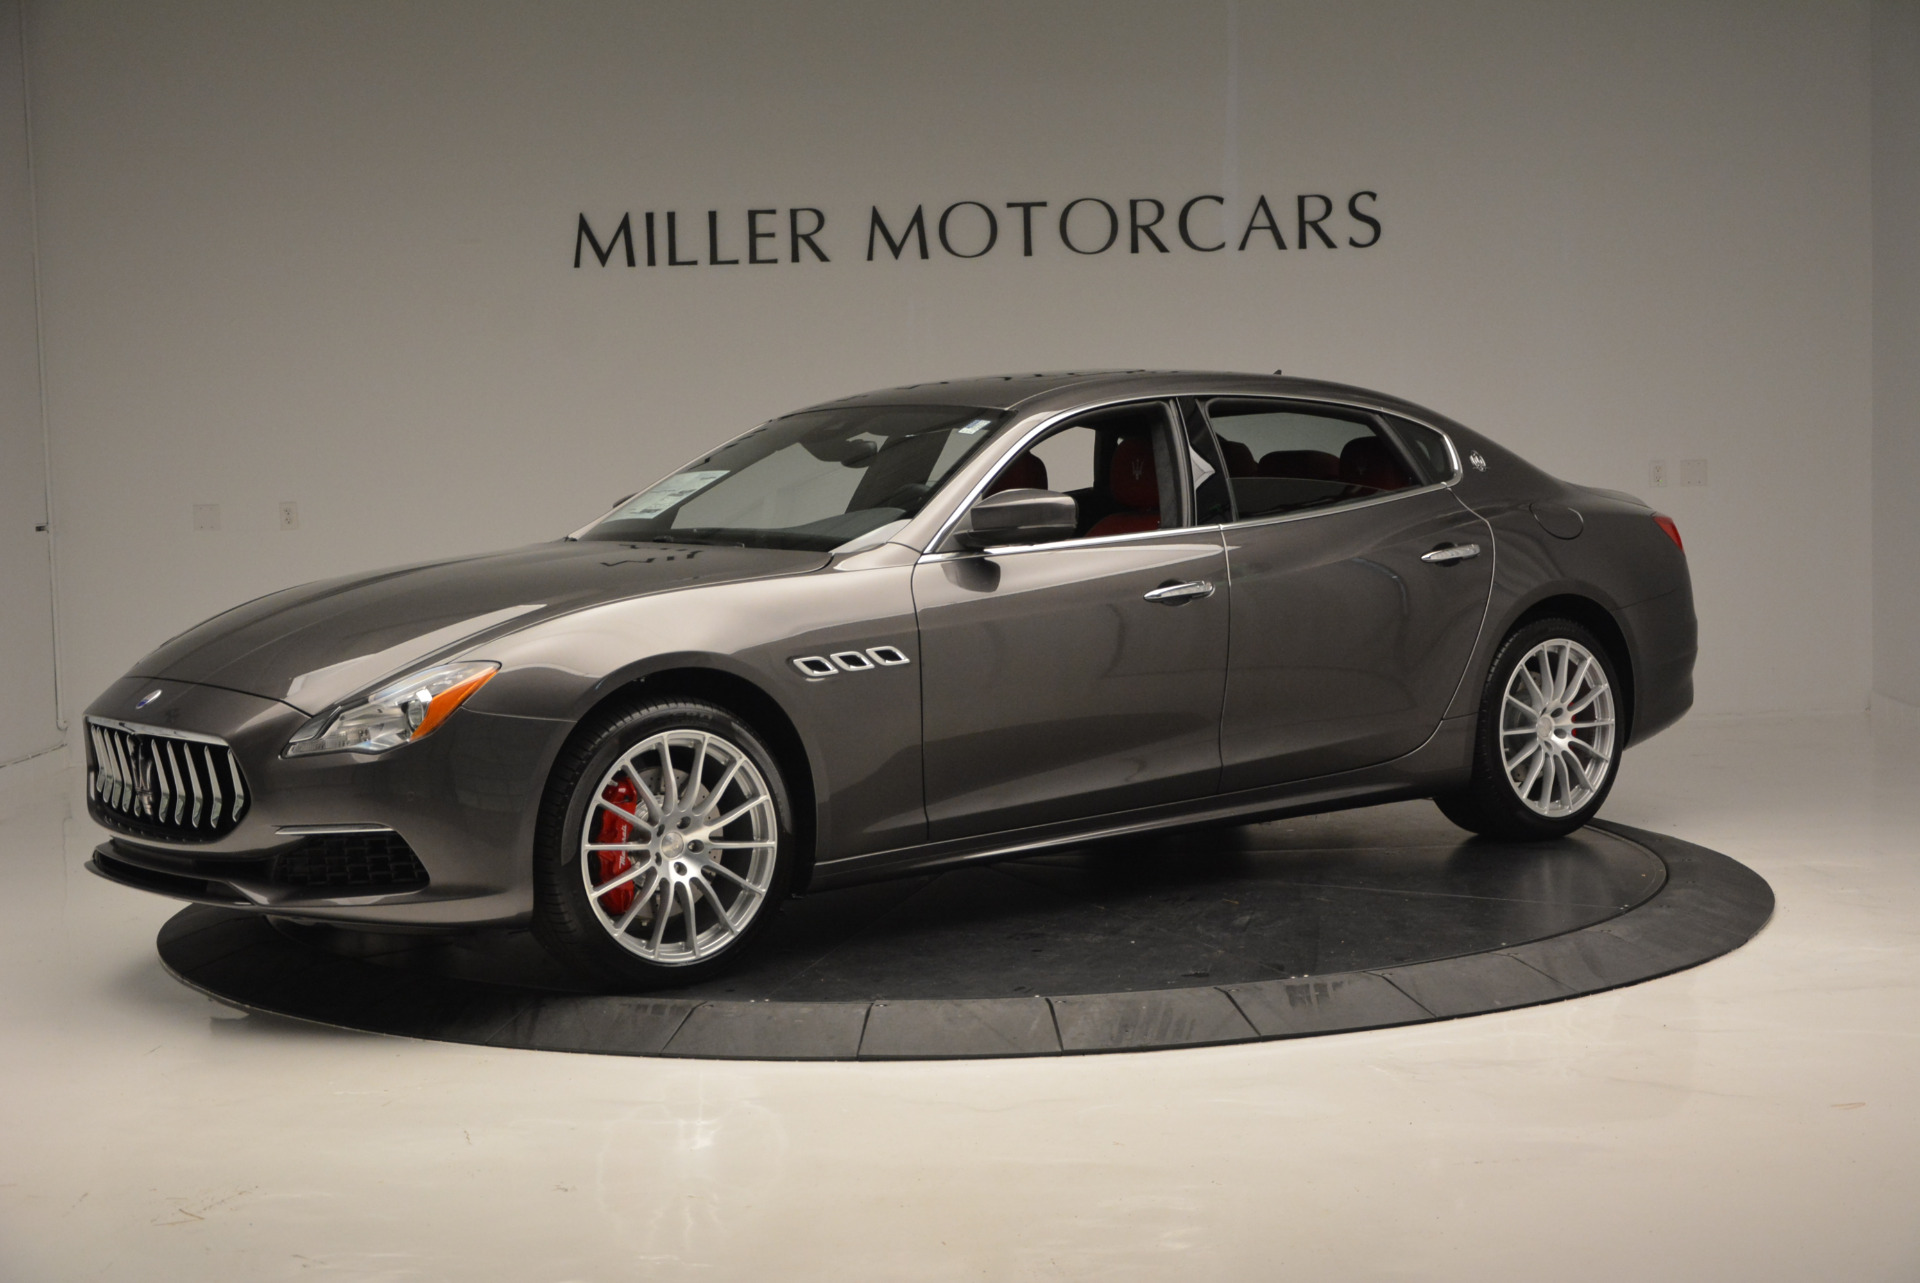 New 2017 Maserati Quattroporte S Q4 GranLusso For Sale In Greenwich, CT 585_p2